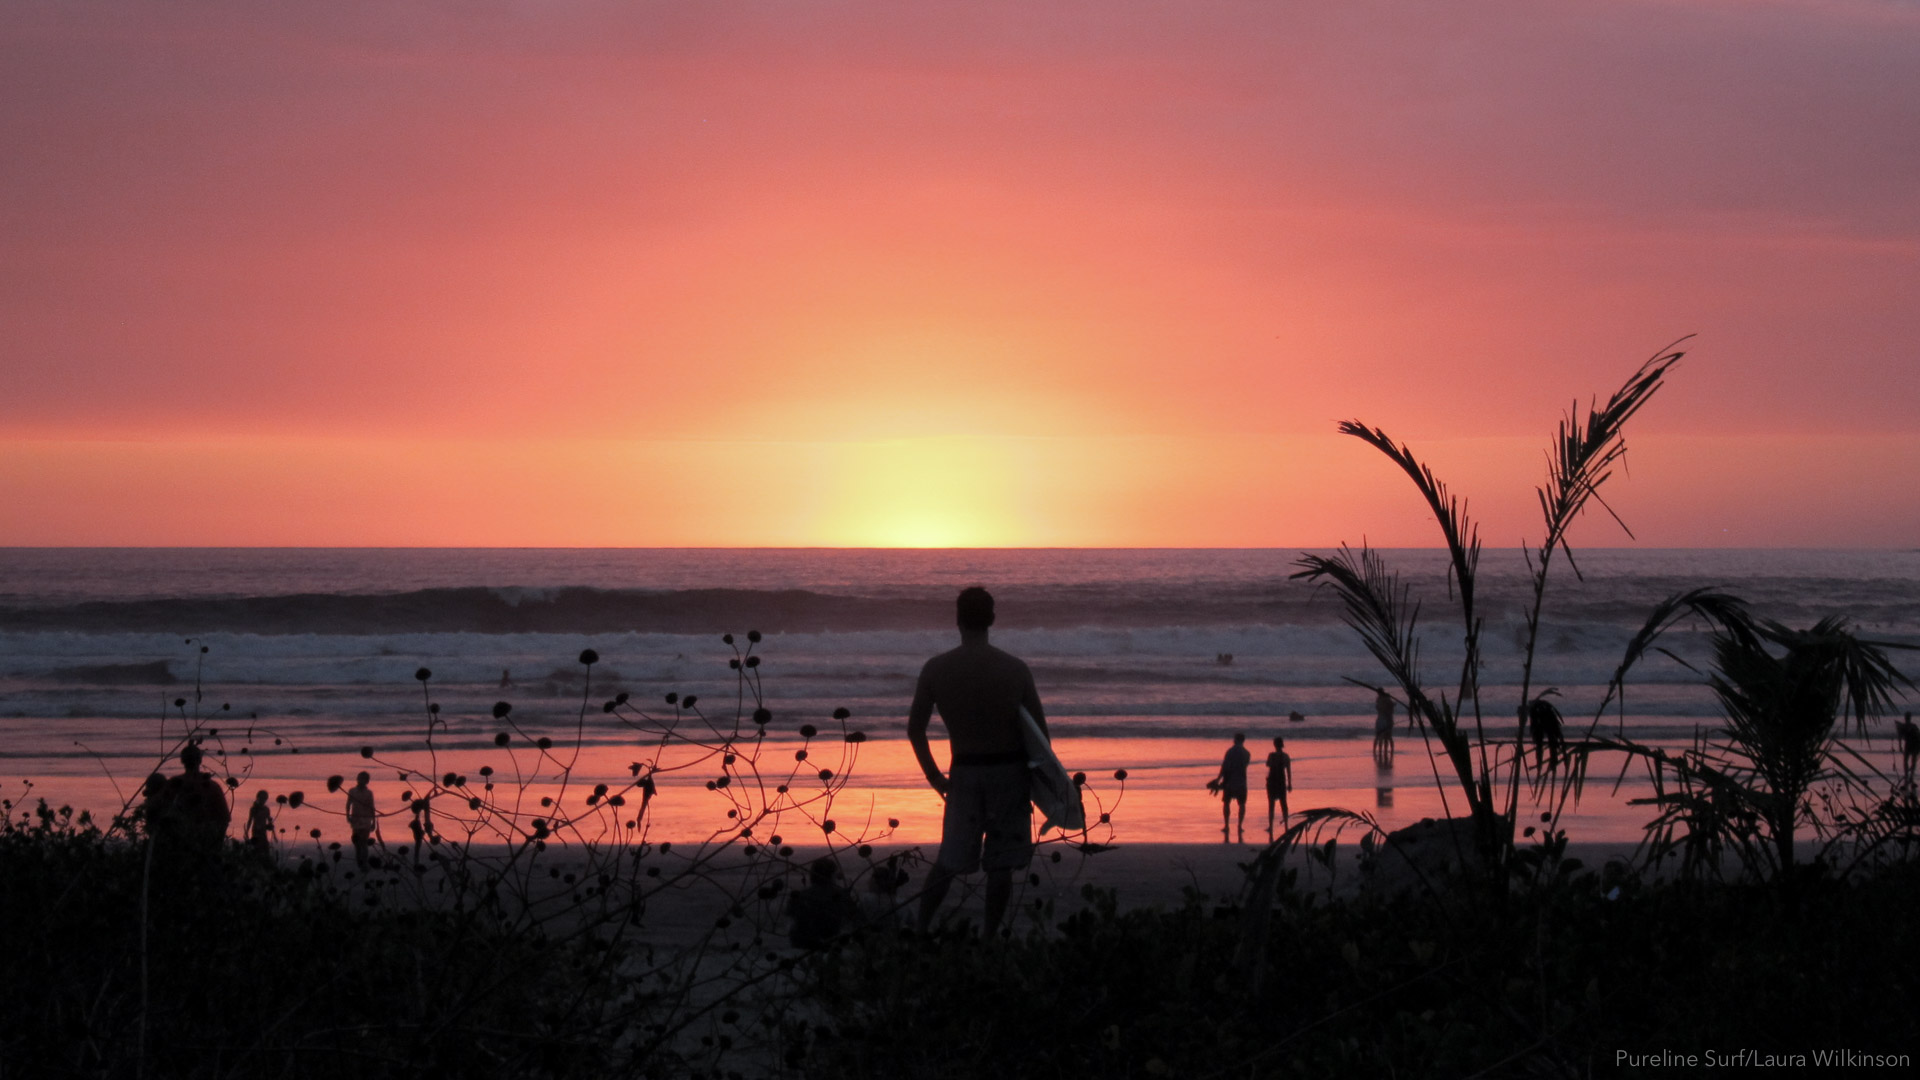 A lone surfer standing on Playa Guiones at sunset in Nosara, Costa Rica; a great beach for progression your surfing with Pureline Surf.